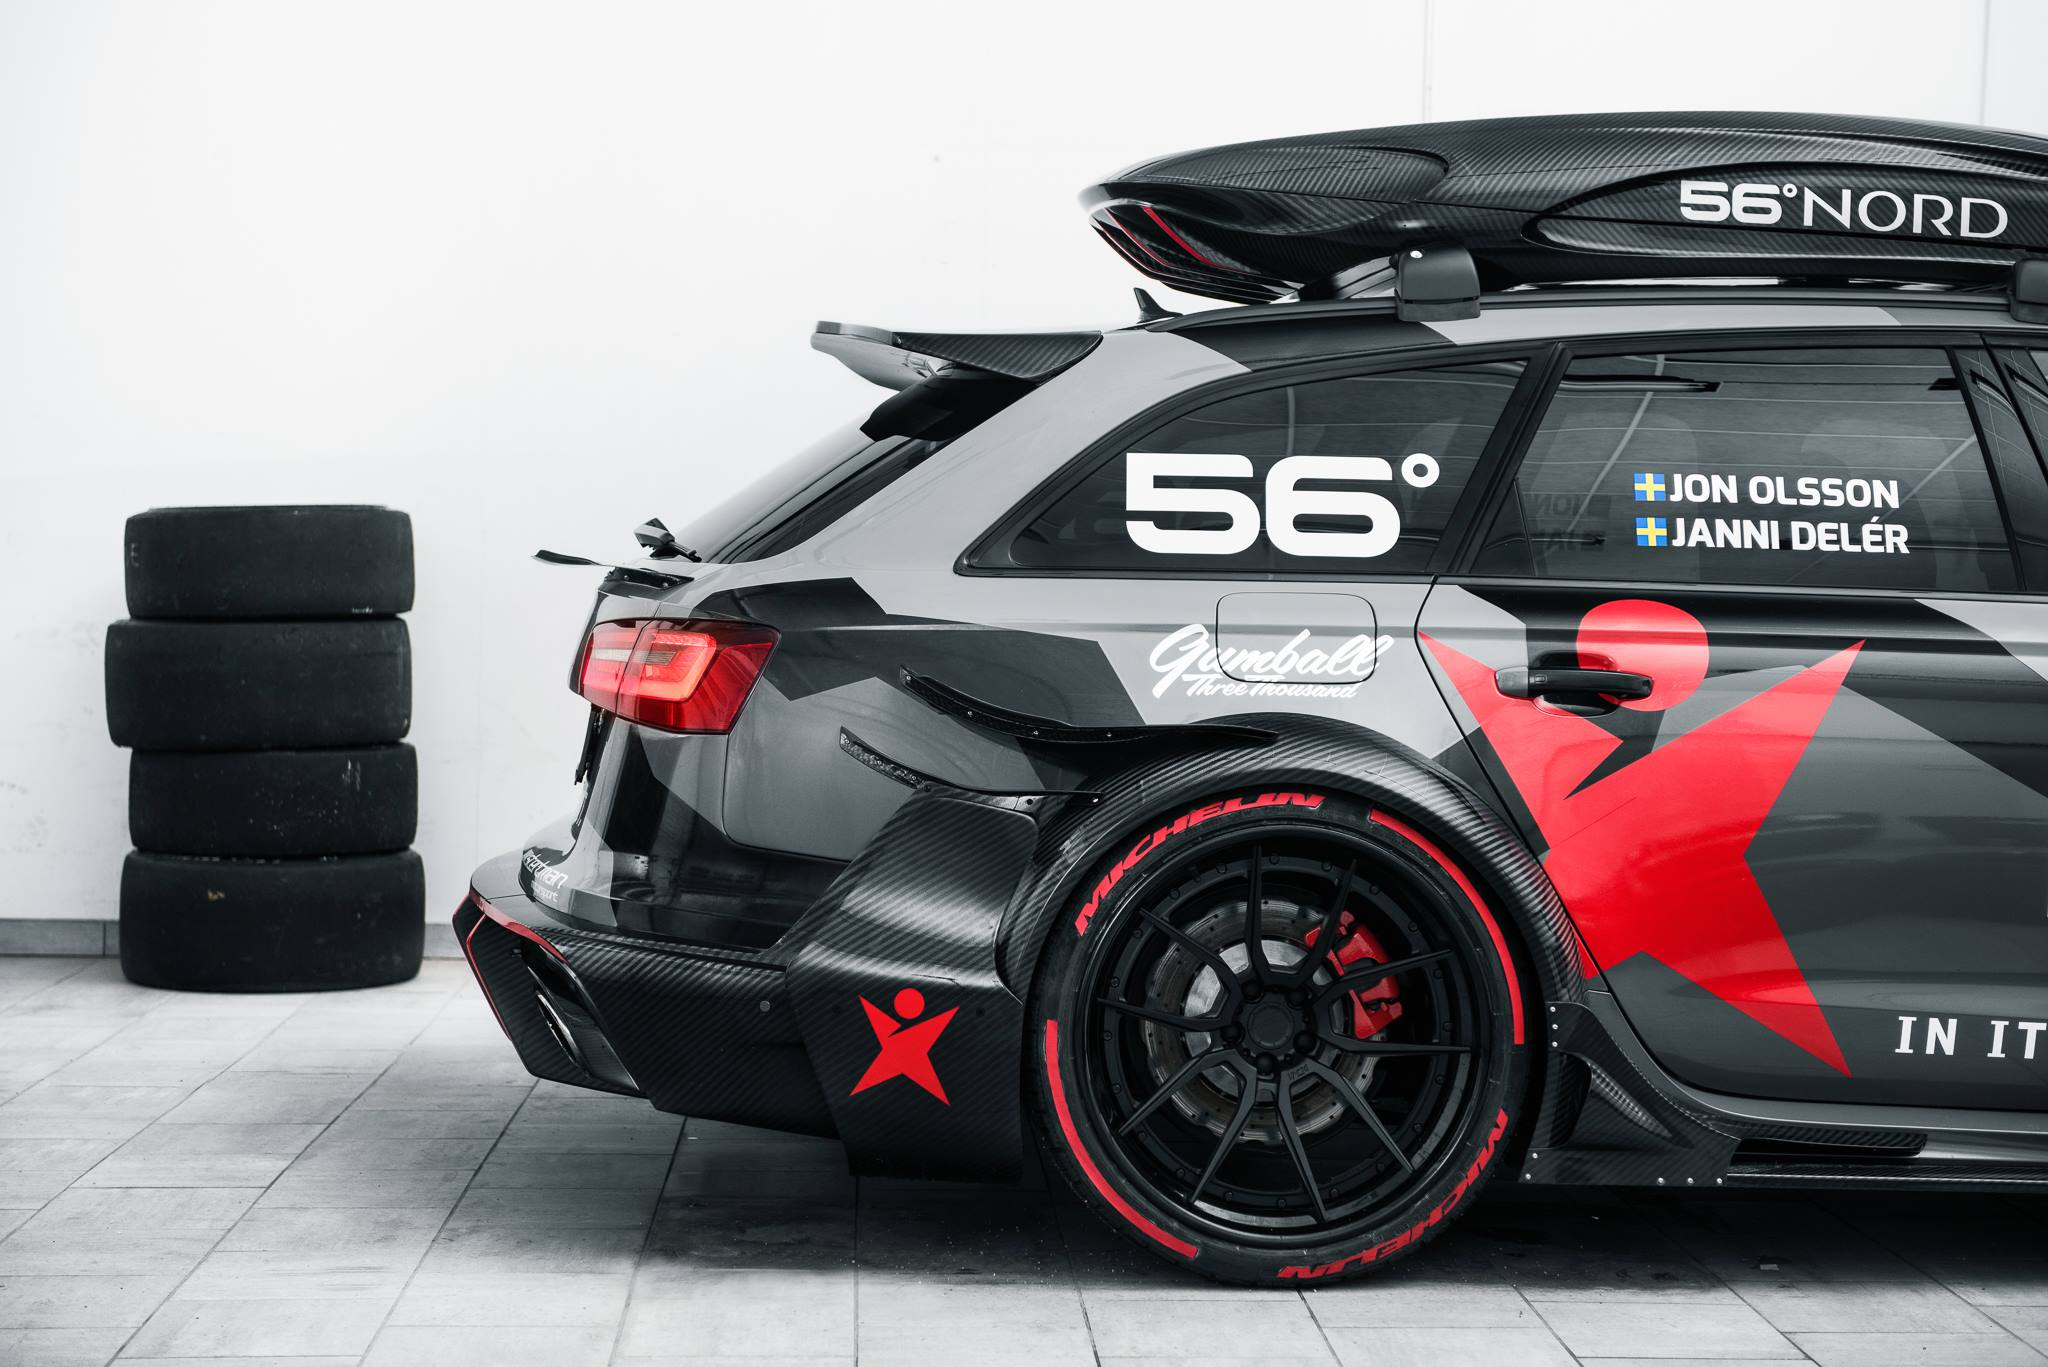 1 000 Hp Audi Rs6 Owned By Jon Olsson Burns To The Ground